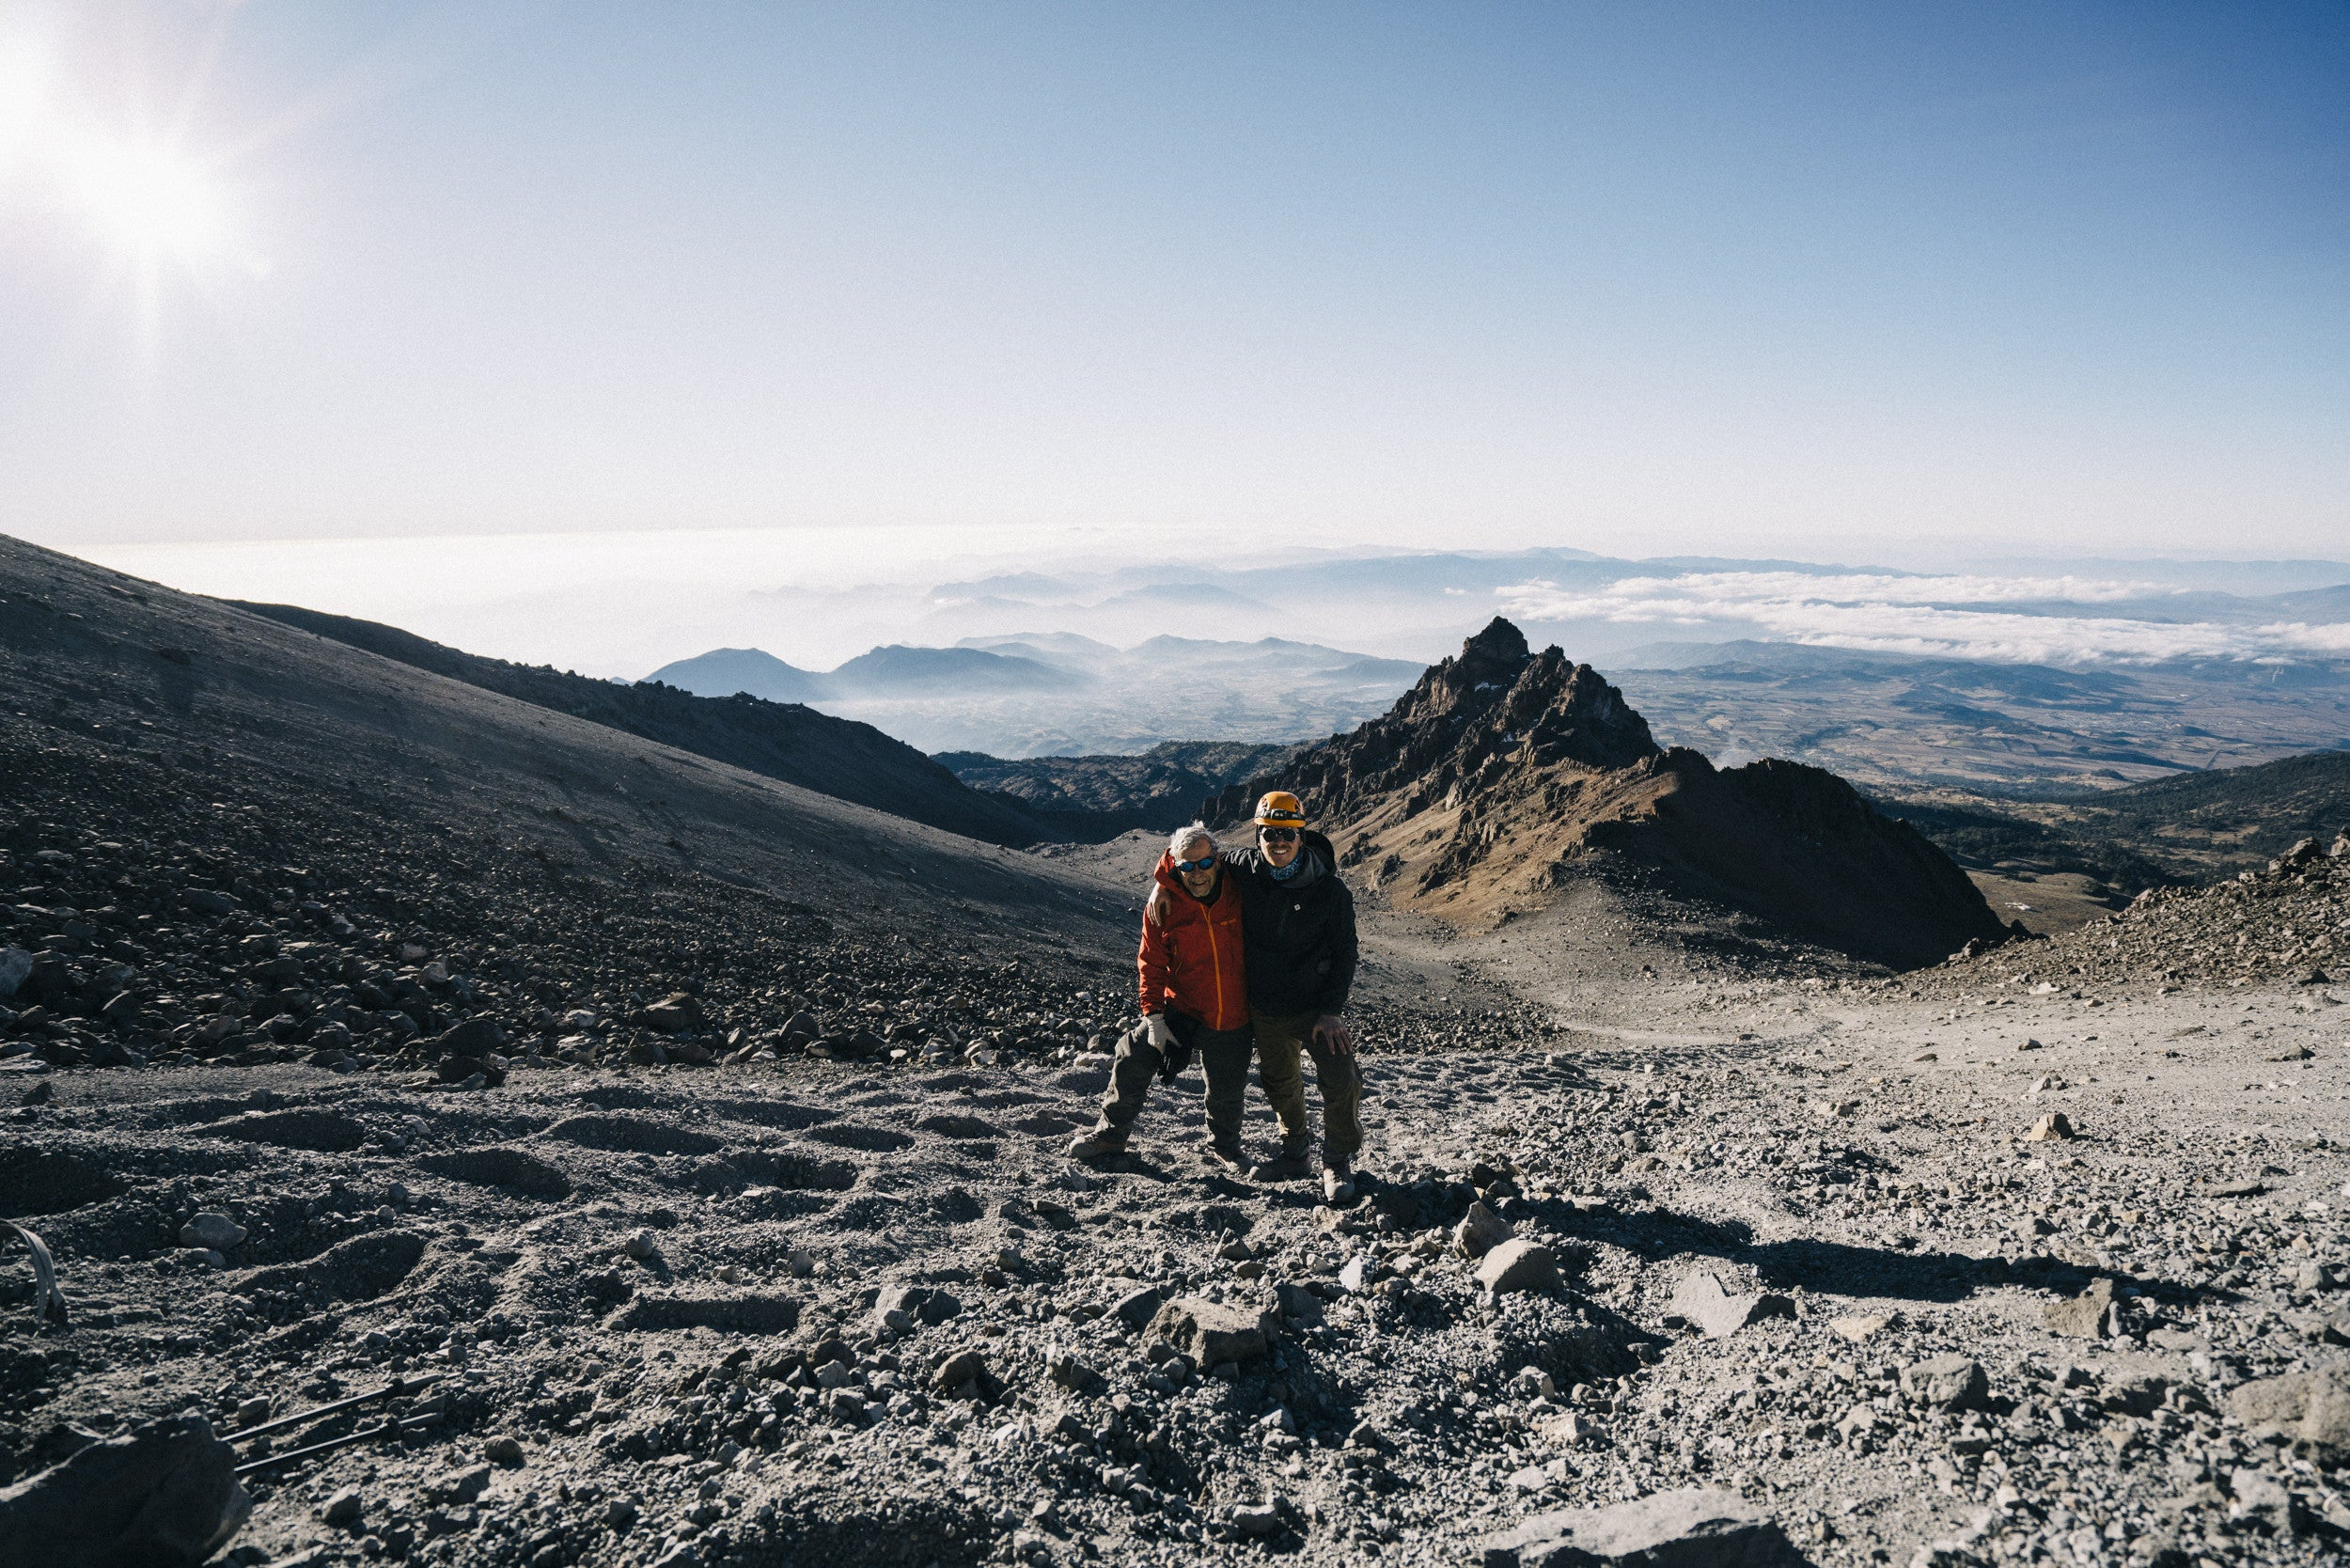 Summit attempt on Orizaba